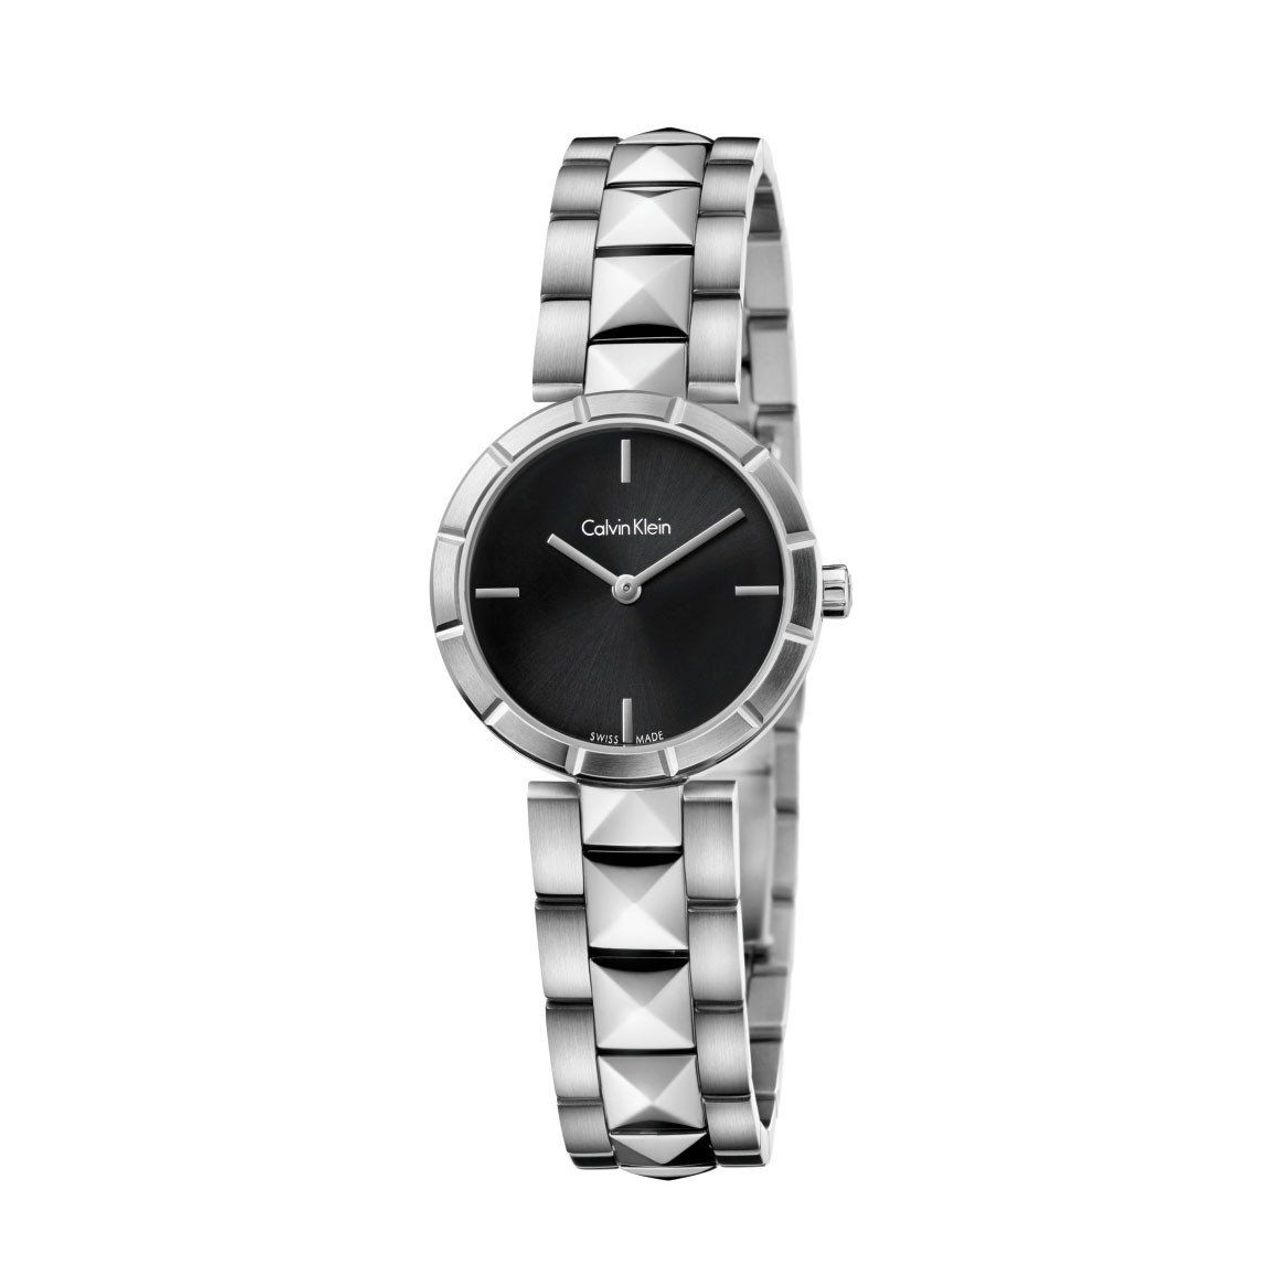 Calvin Klein K5T33141 Womens Analog Watch with Stainless Steel Strap